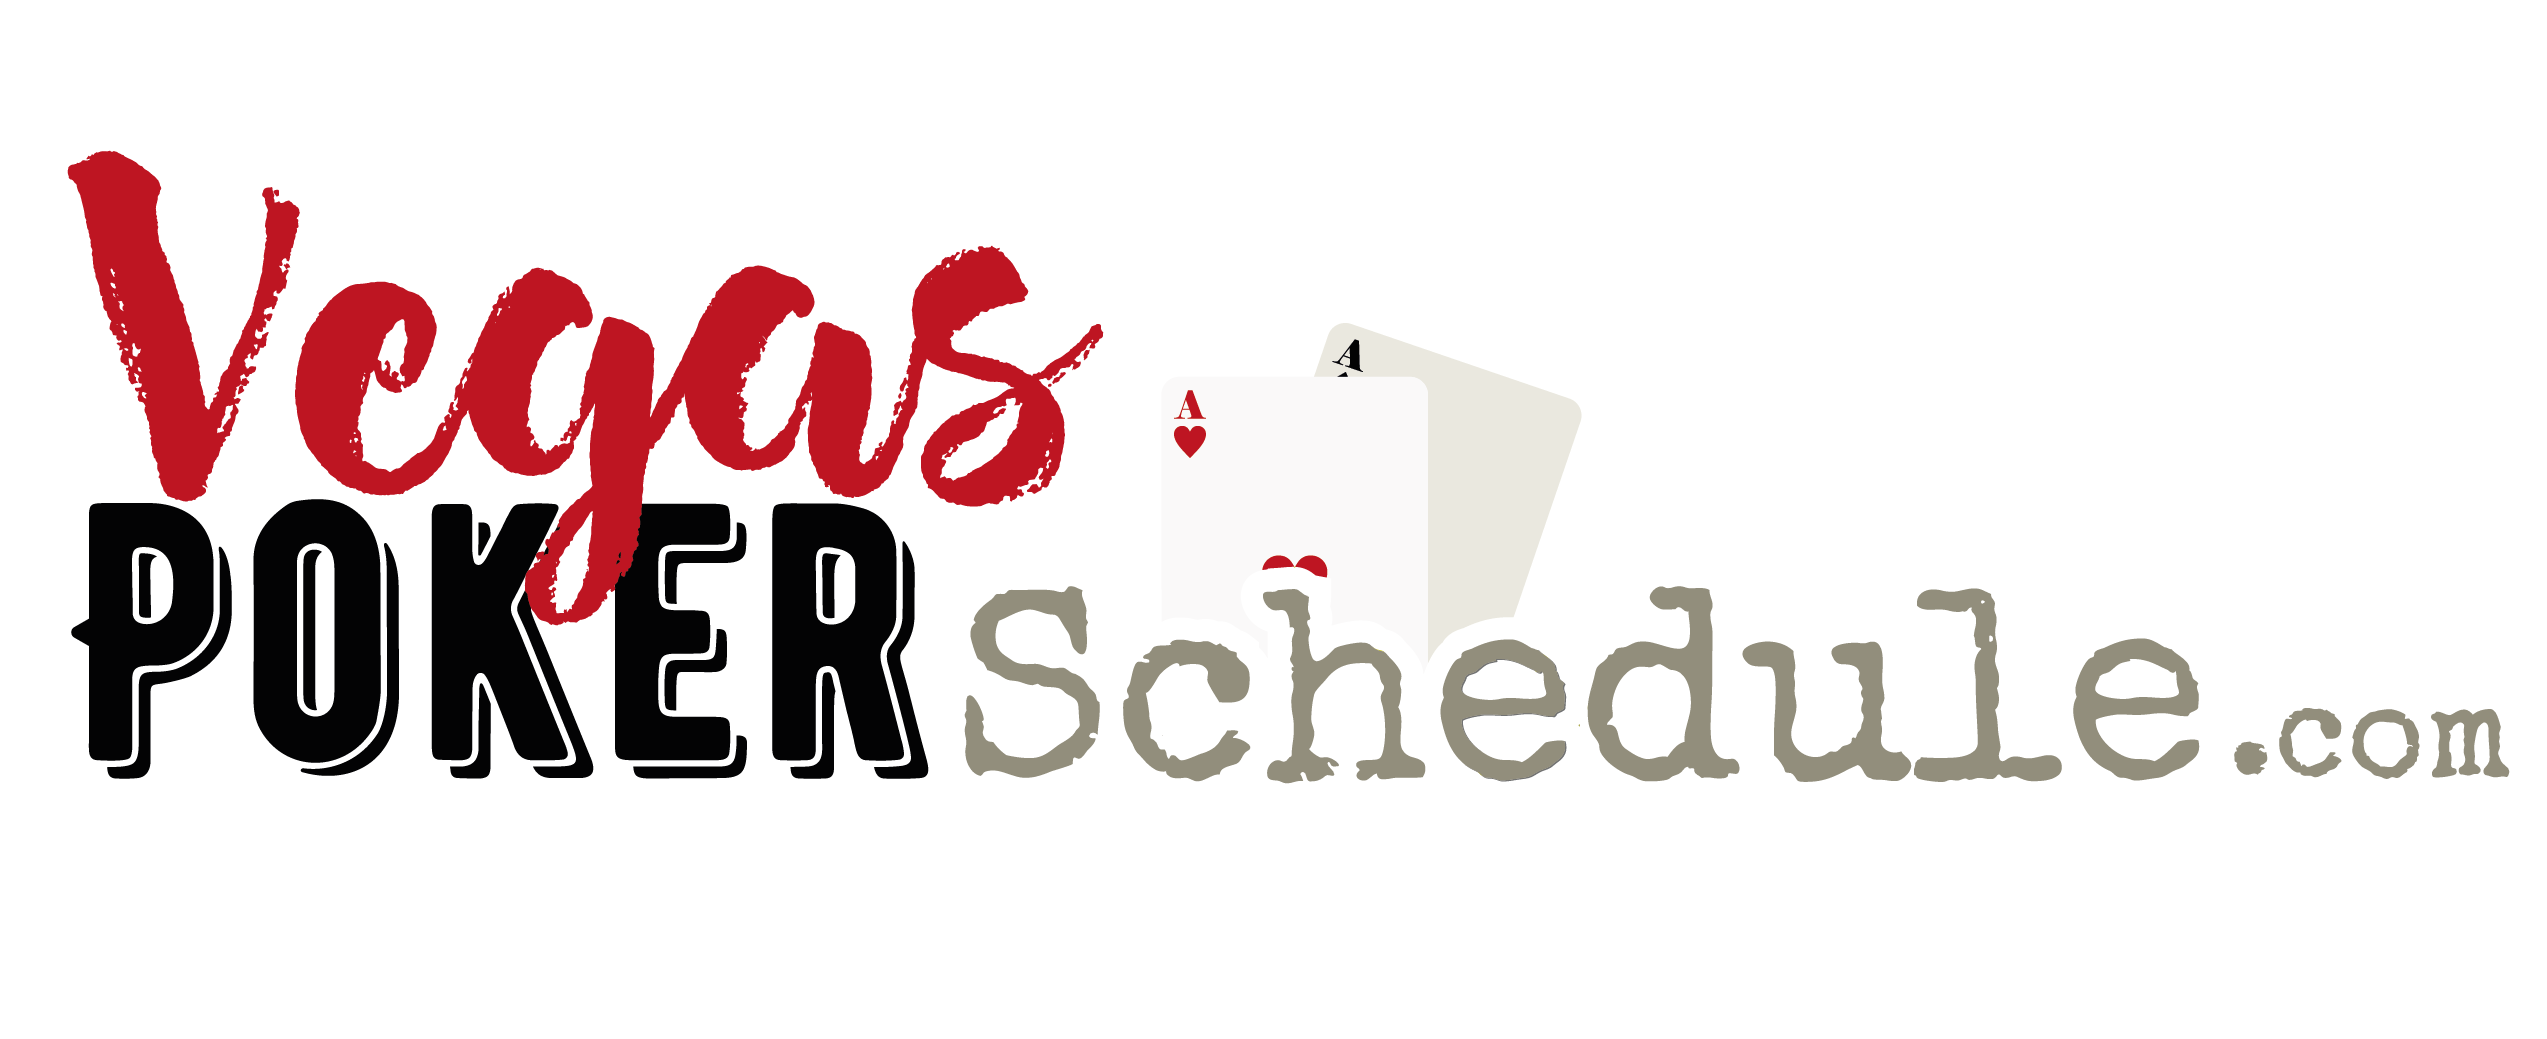 Olg Poker Schedule